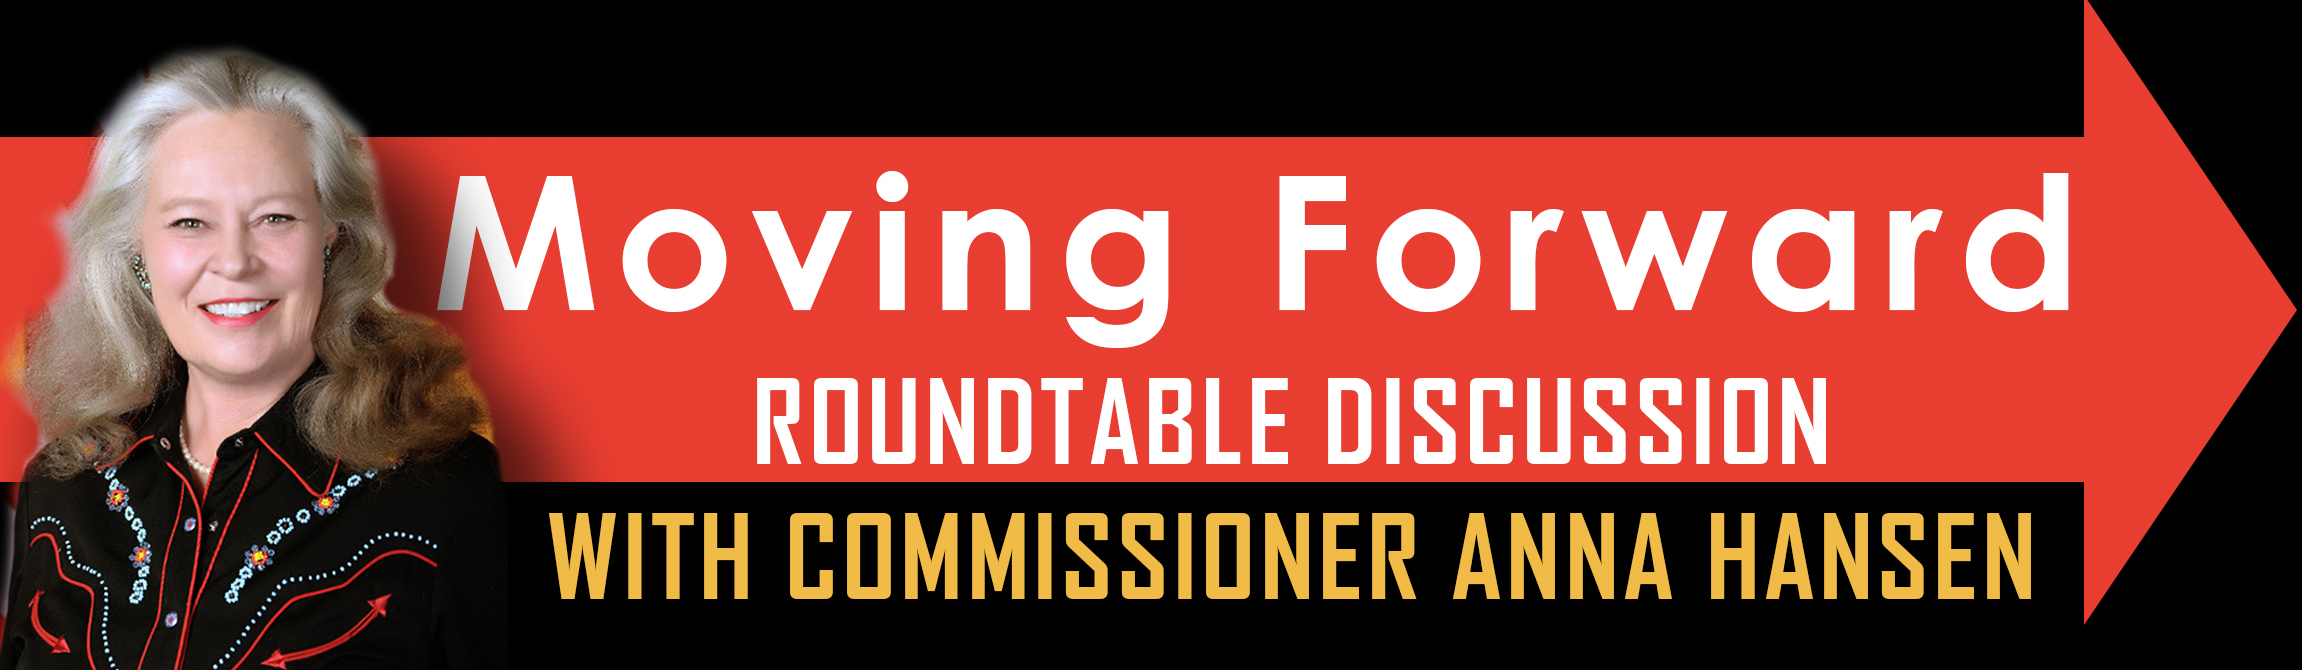 Moving Forward - Roundtable Discussion